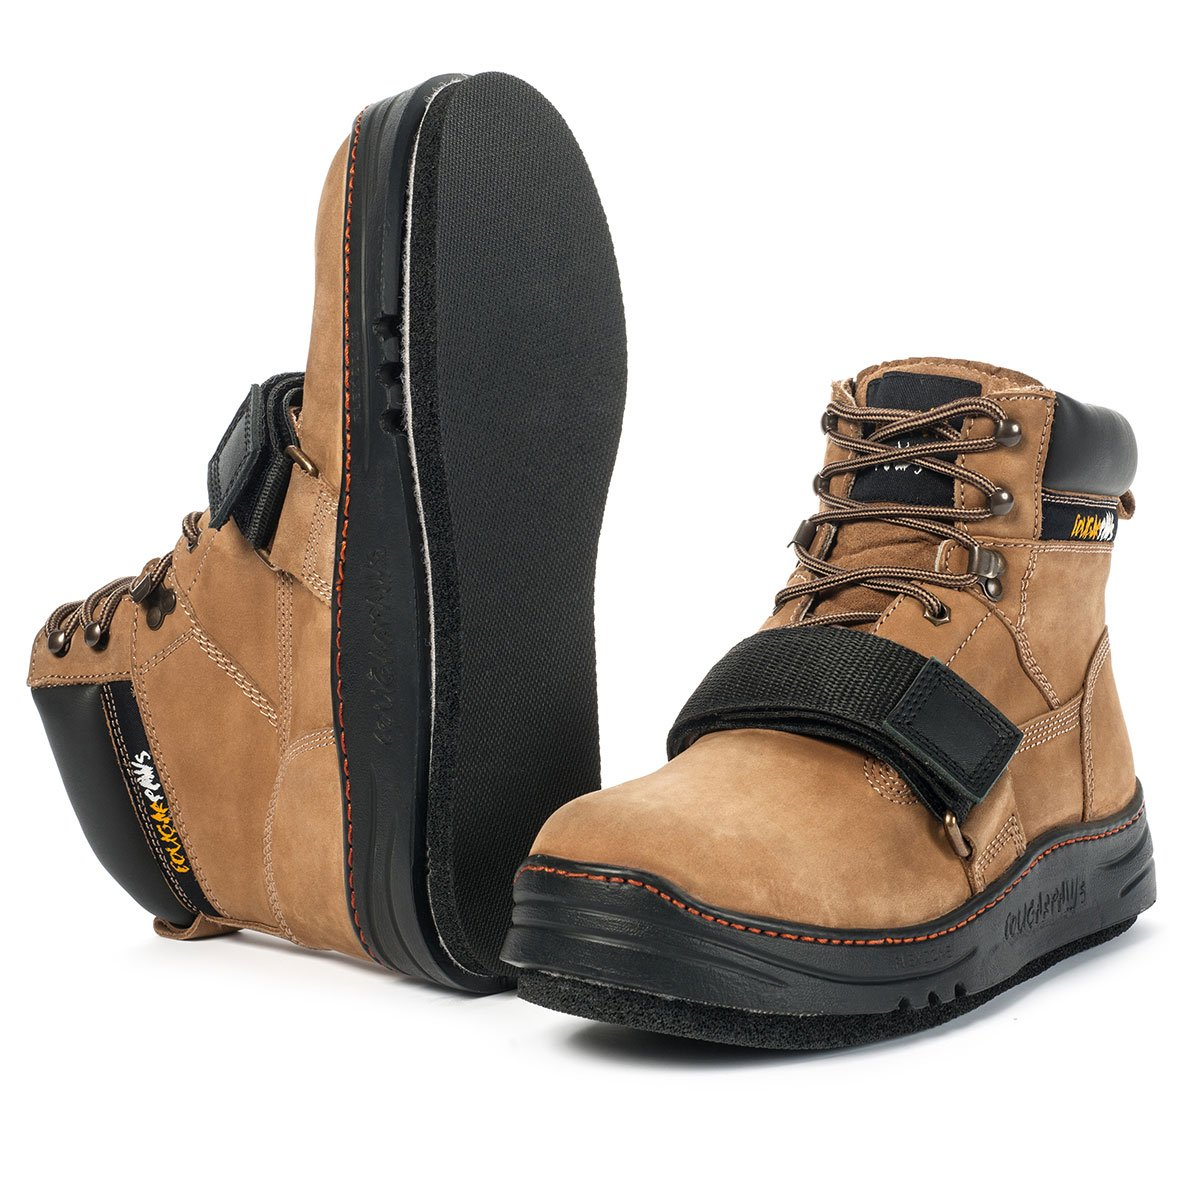 Cougar Paw Perform Roof Boot Size 10